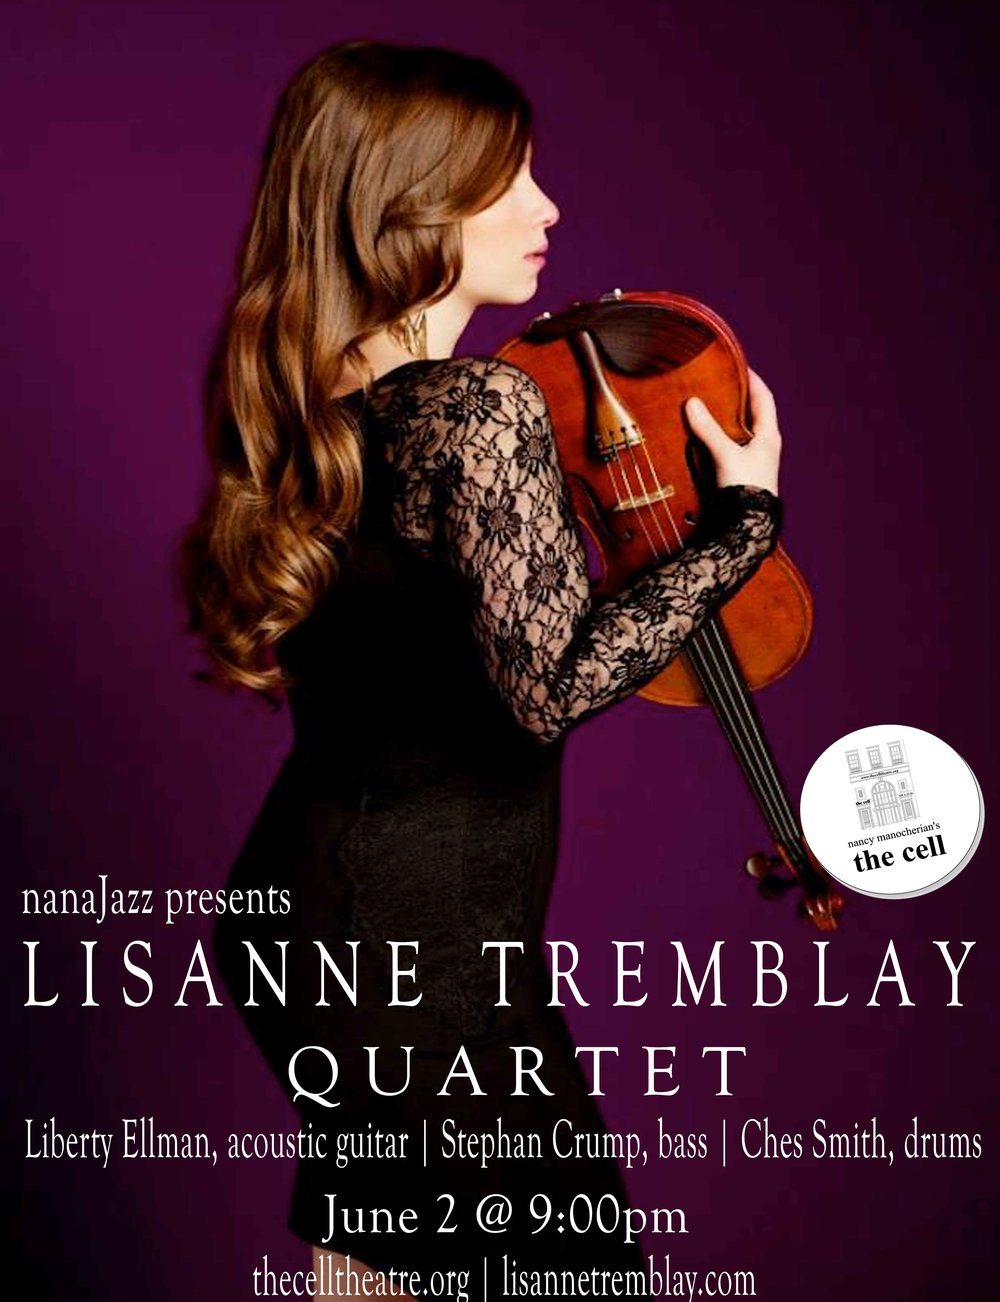 Although still a relatively recent transplant to the New York area, Lisanne Tremblay has developed a tremendous array of fans and collaborators, including Greg Osby and Danilo Perez.  Her quartet (violin, piano, bass, drums) switches things up in terms of the jazz perspective they present, but Tremblay's violin maintains a remarkably consistent voice despite the scene changes.  The end result is that a familiarity is bred with her particular voice that never sits still in presenting unexpected views.  There's some post-bop, some contemporary, some avant-garde(ish) angularity and some jazz-folk.